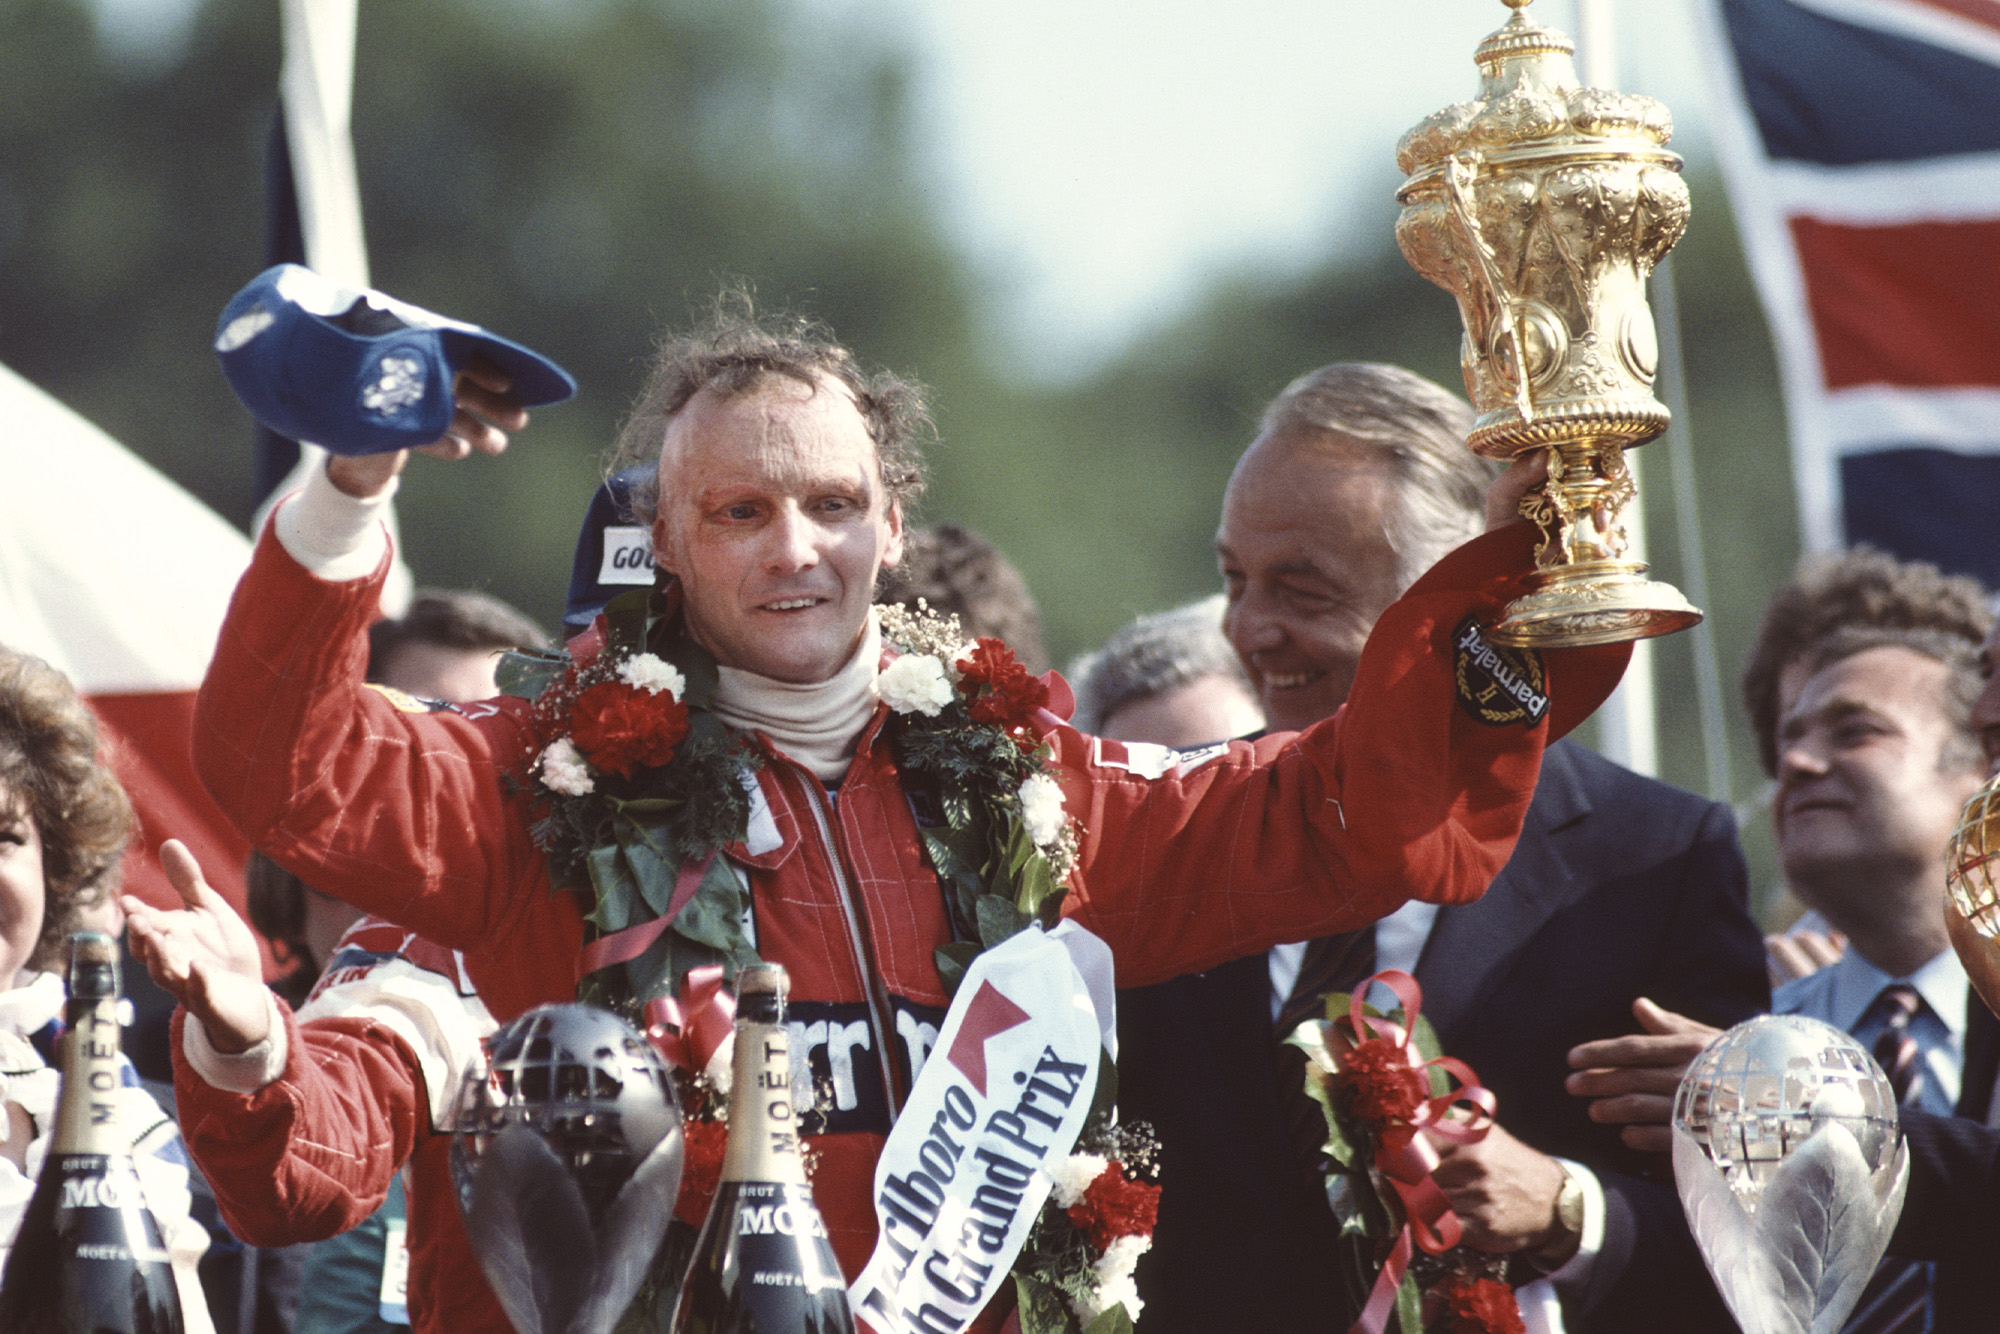 Niki Lauda holds up the winning trophy from the 1982 British Grand Prix at Brands Hatch